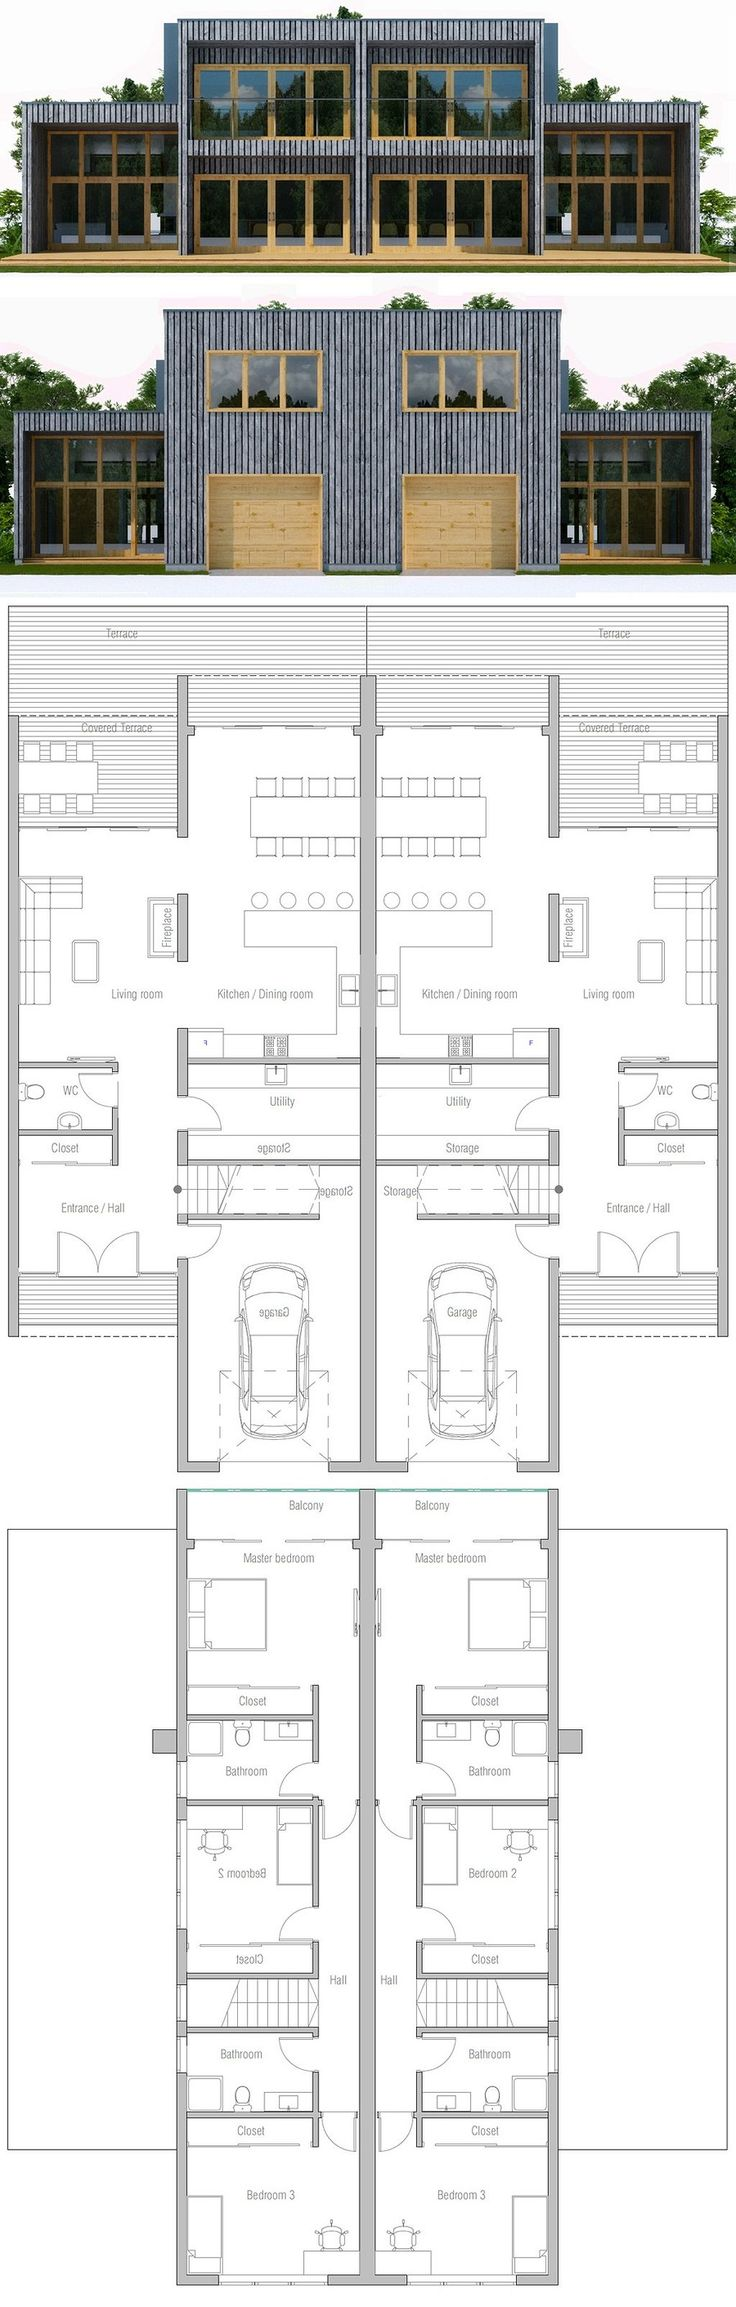 Architecture House Design Plans best 25+ building architecture ideas on pinterest | architecture